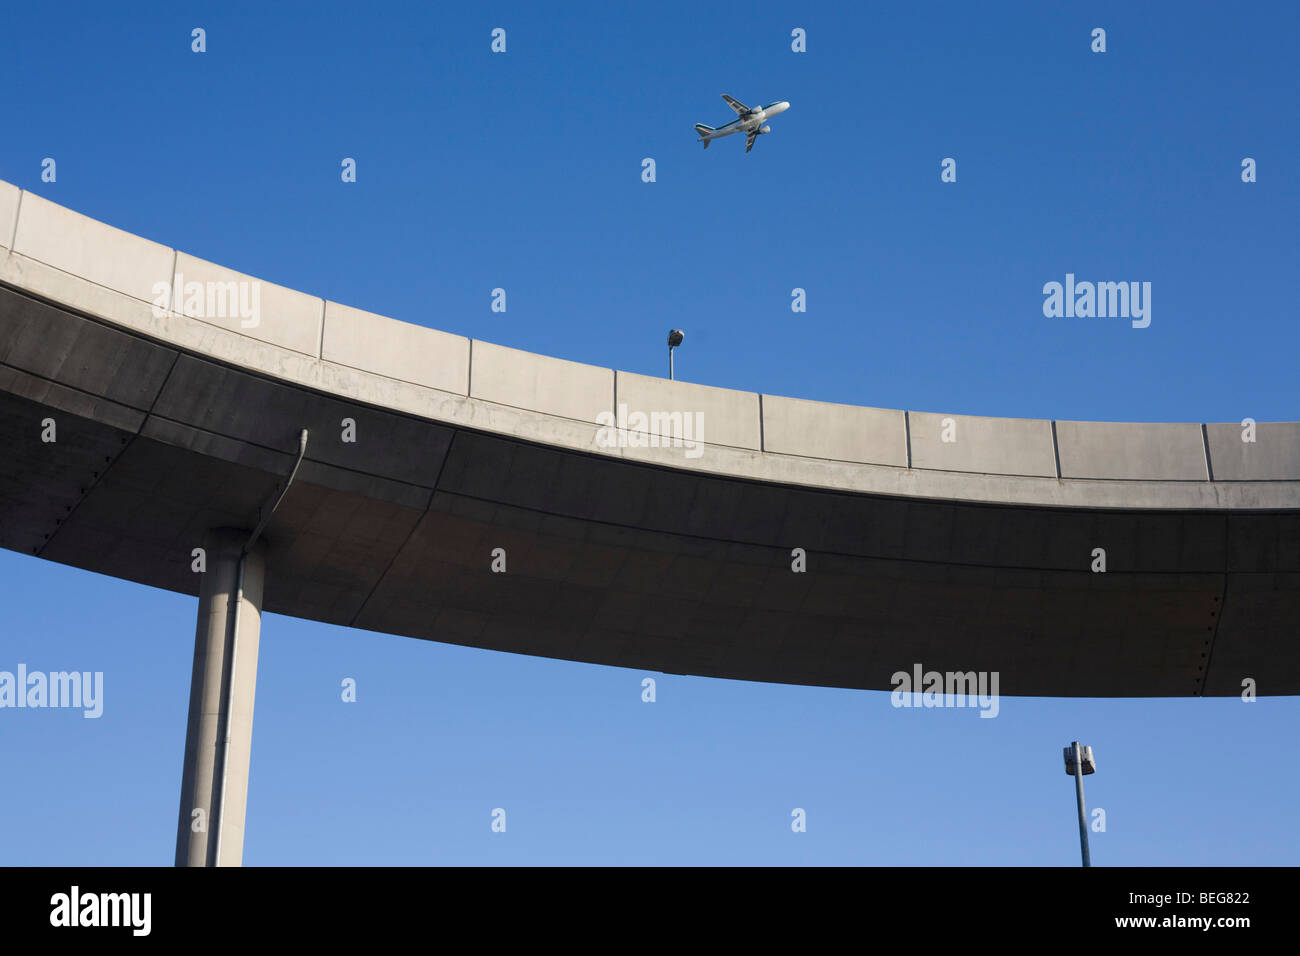 A jet airliner climbs away as it takes-off over a traffic ramp at Heathrow Airport's Terminal 5. - Stock Image